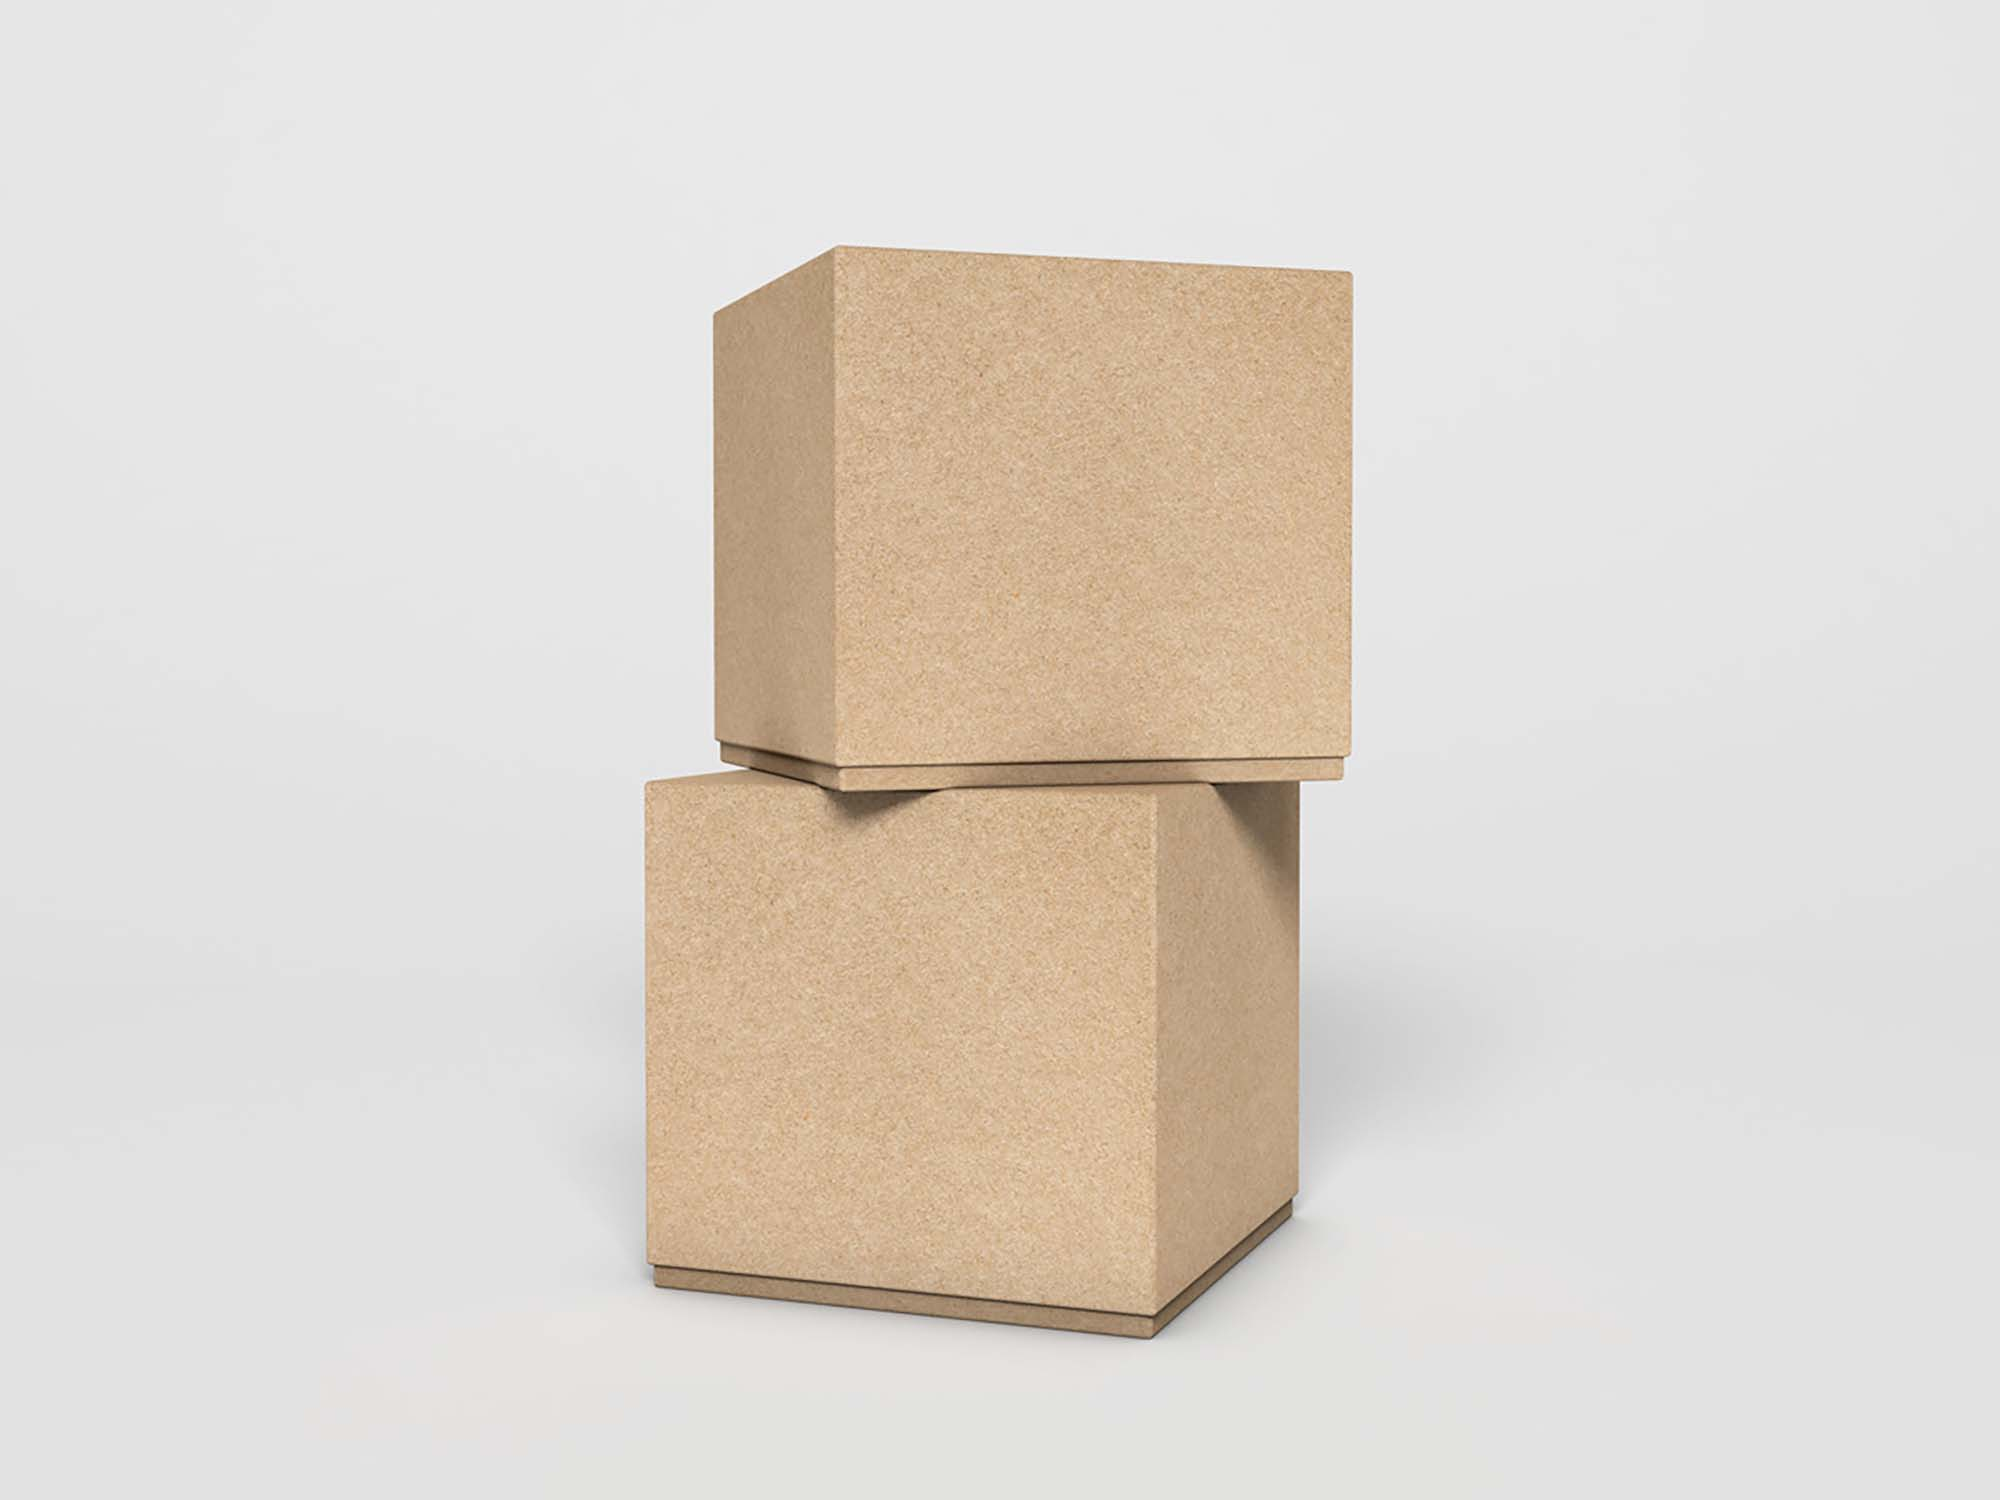 Craft Boxes Mockup 1